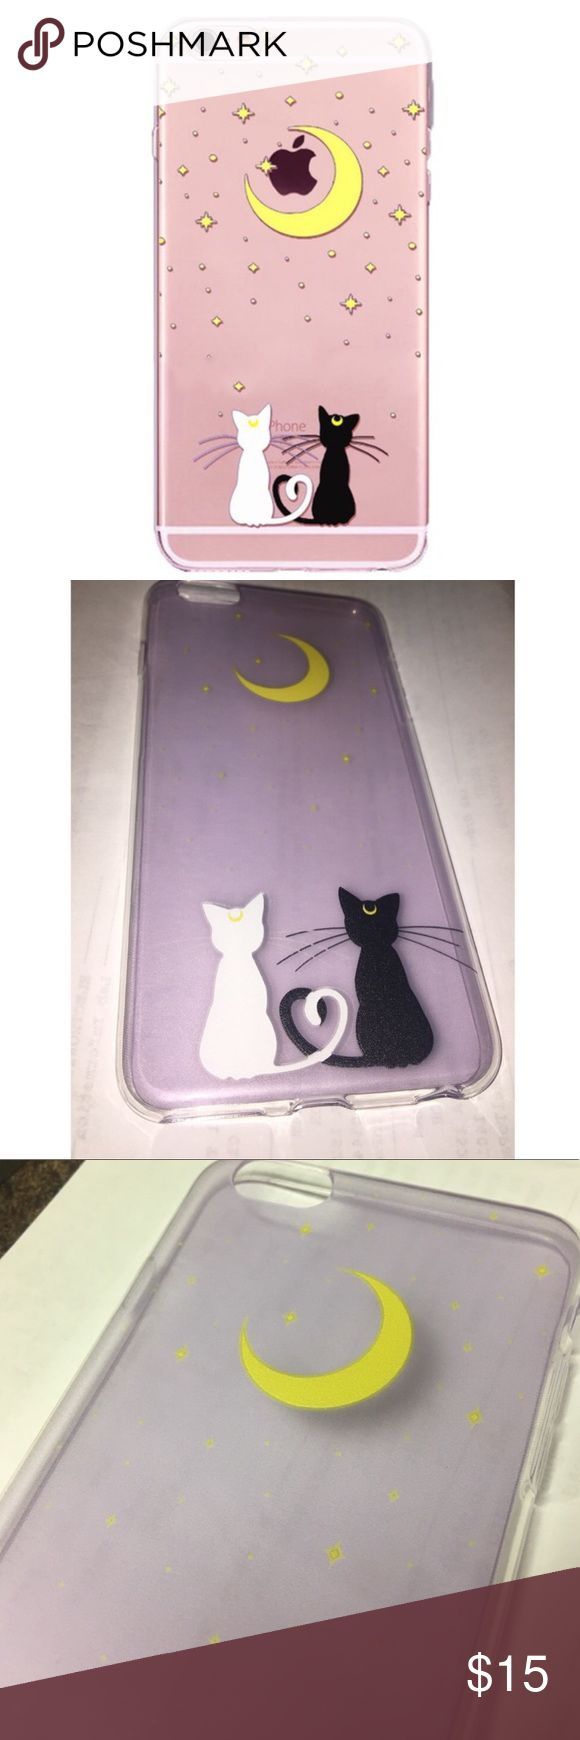 iPhone Soft Shell Case Brand new, in packaging. Silicone, Soft Shell back case. Available for the iPhone 7, iPhone 7 Plus, and iPhone 6/6s Plus. ⭐️Price Firm!!!!  ⭐️No trades ⭐️No lowballs or rude comments ⭐️Brands are 100% authentic ⭐️No returns for products that don't fit ⭐️I ship the same day or next ⭐️If I don't respond to your comment it's because the answer is here ⭐️DO NOT ASK FOR ADDITIONAL PICS OR MEASUREMENTS IF YOU ARE NOT SERIOUS ABOUT BUYING! Accessories Phone Cases